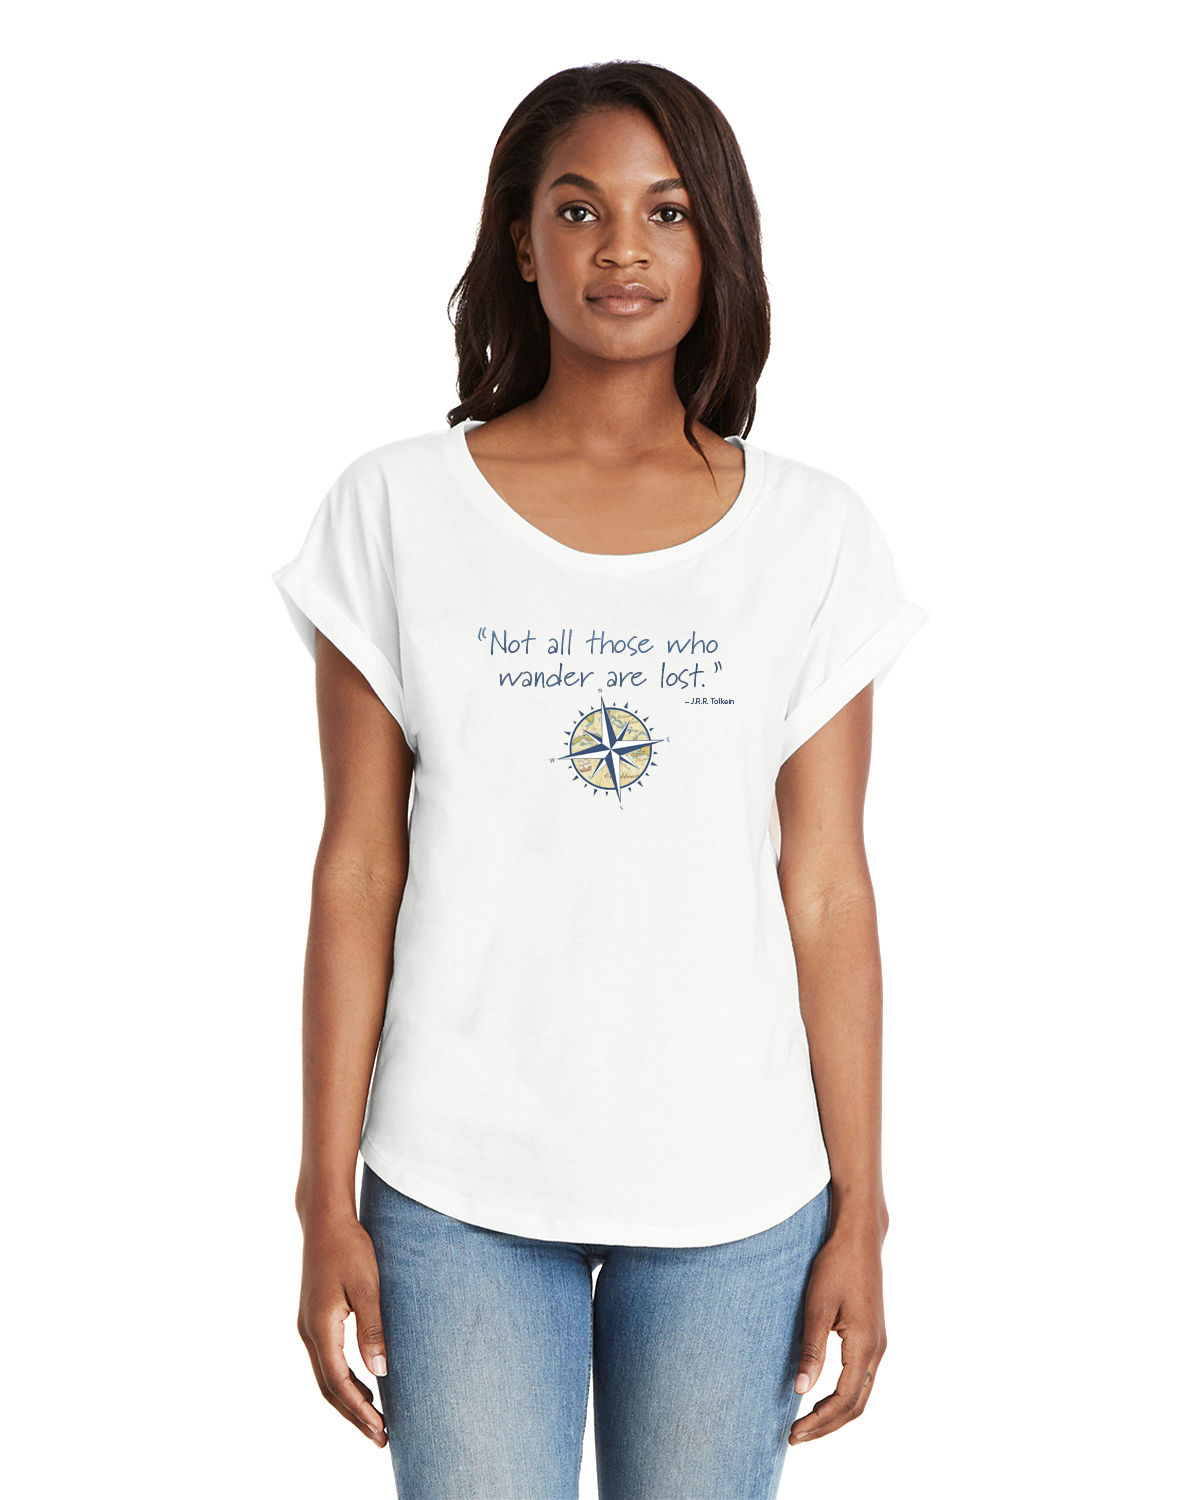 Not all those who wander are lost women's white Dolman sleeve t-shirt